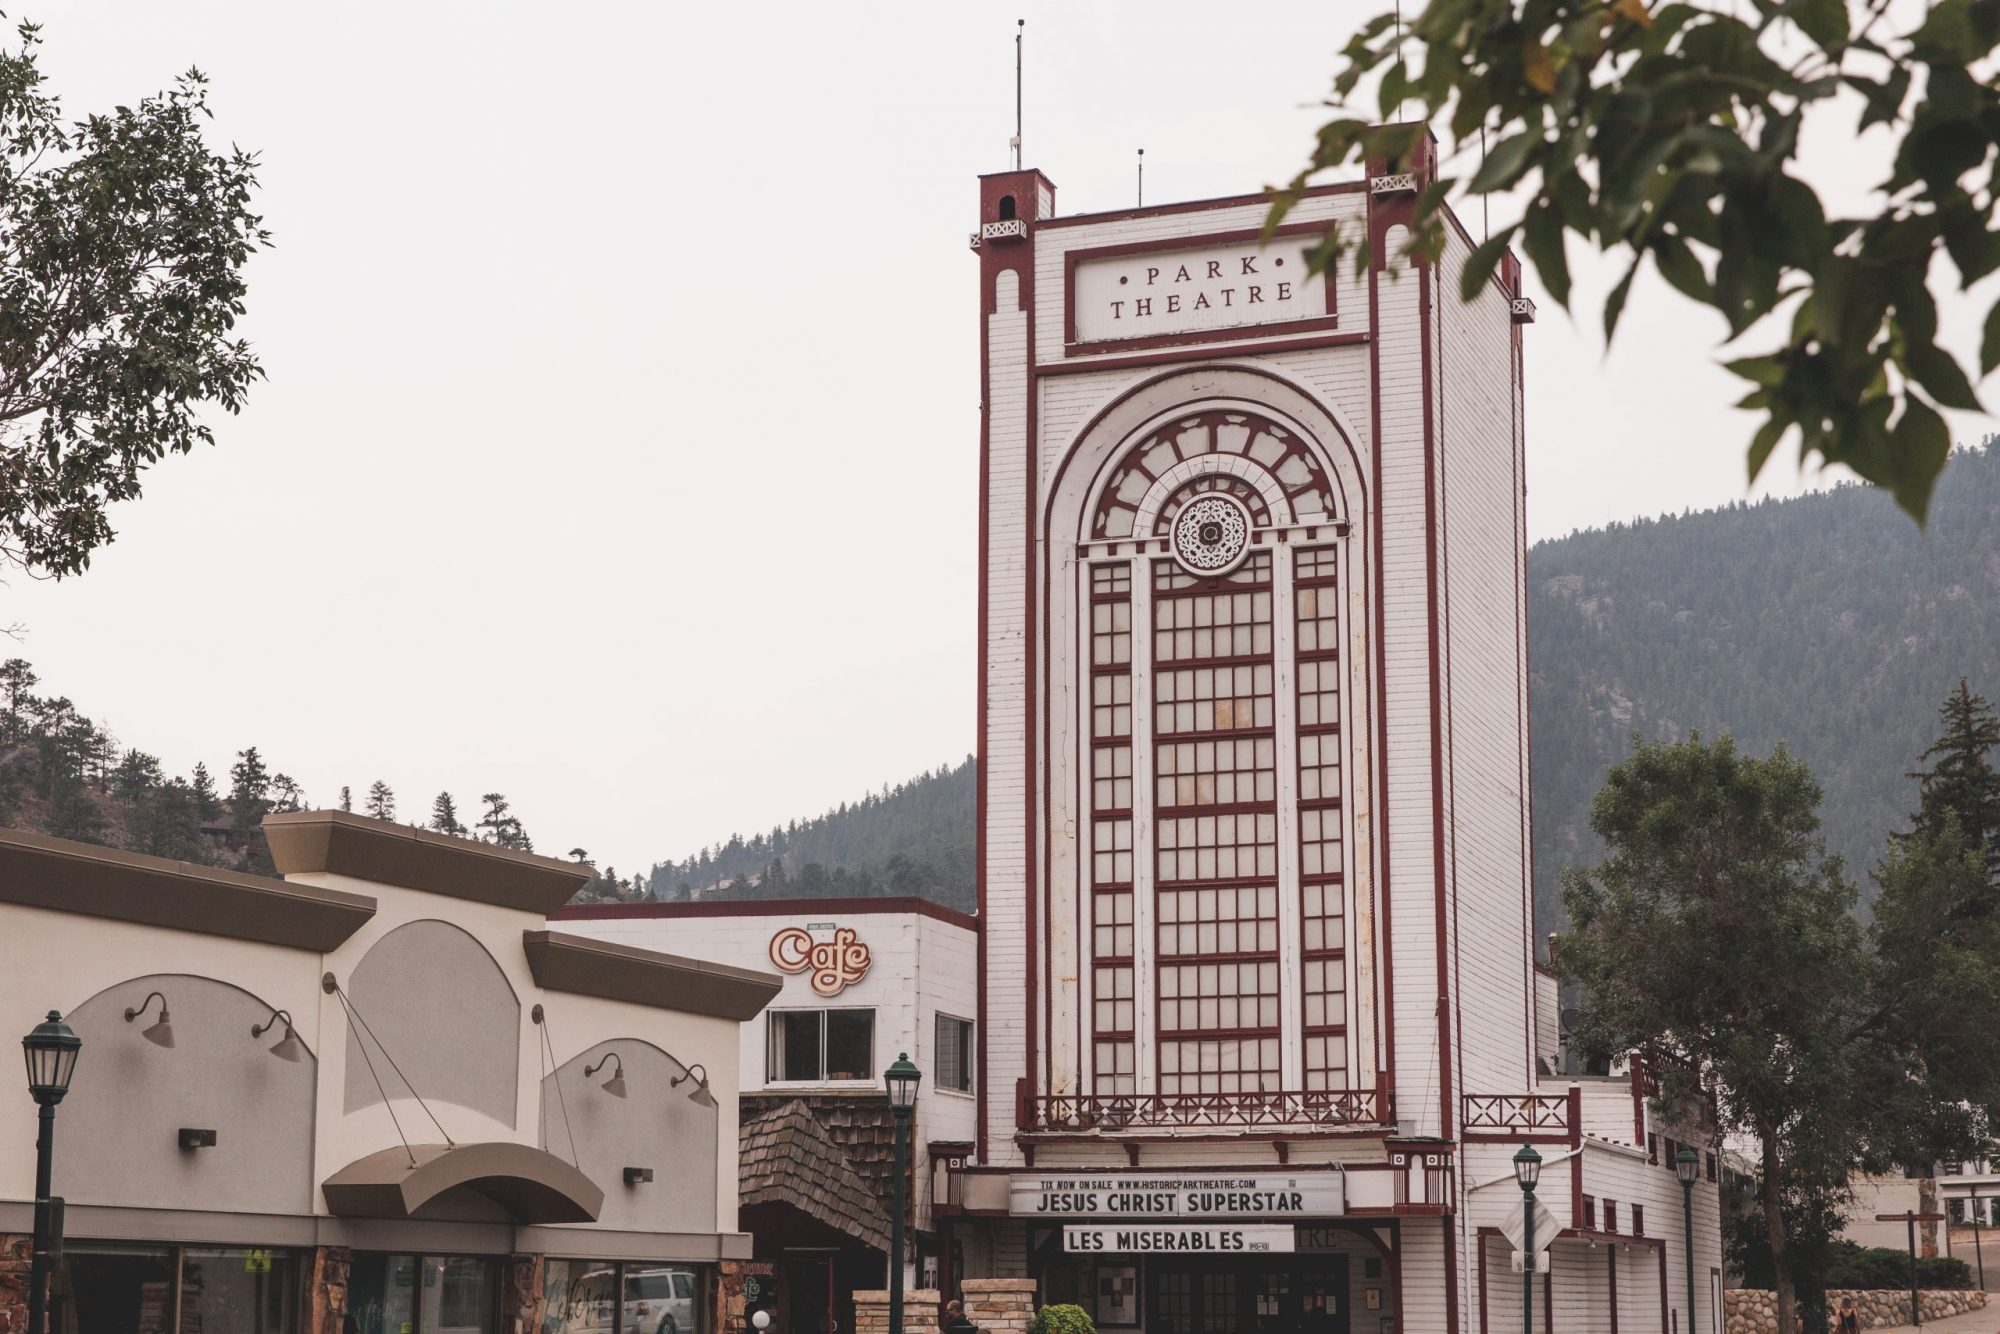 The Historic Park Theater in Estes Park, Colorado is a tall white and red western-themed building